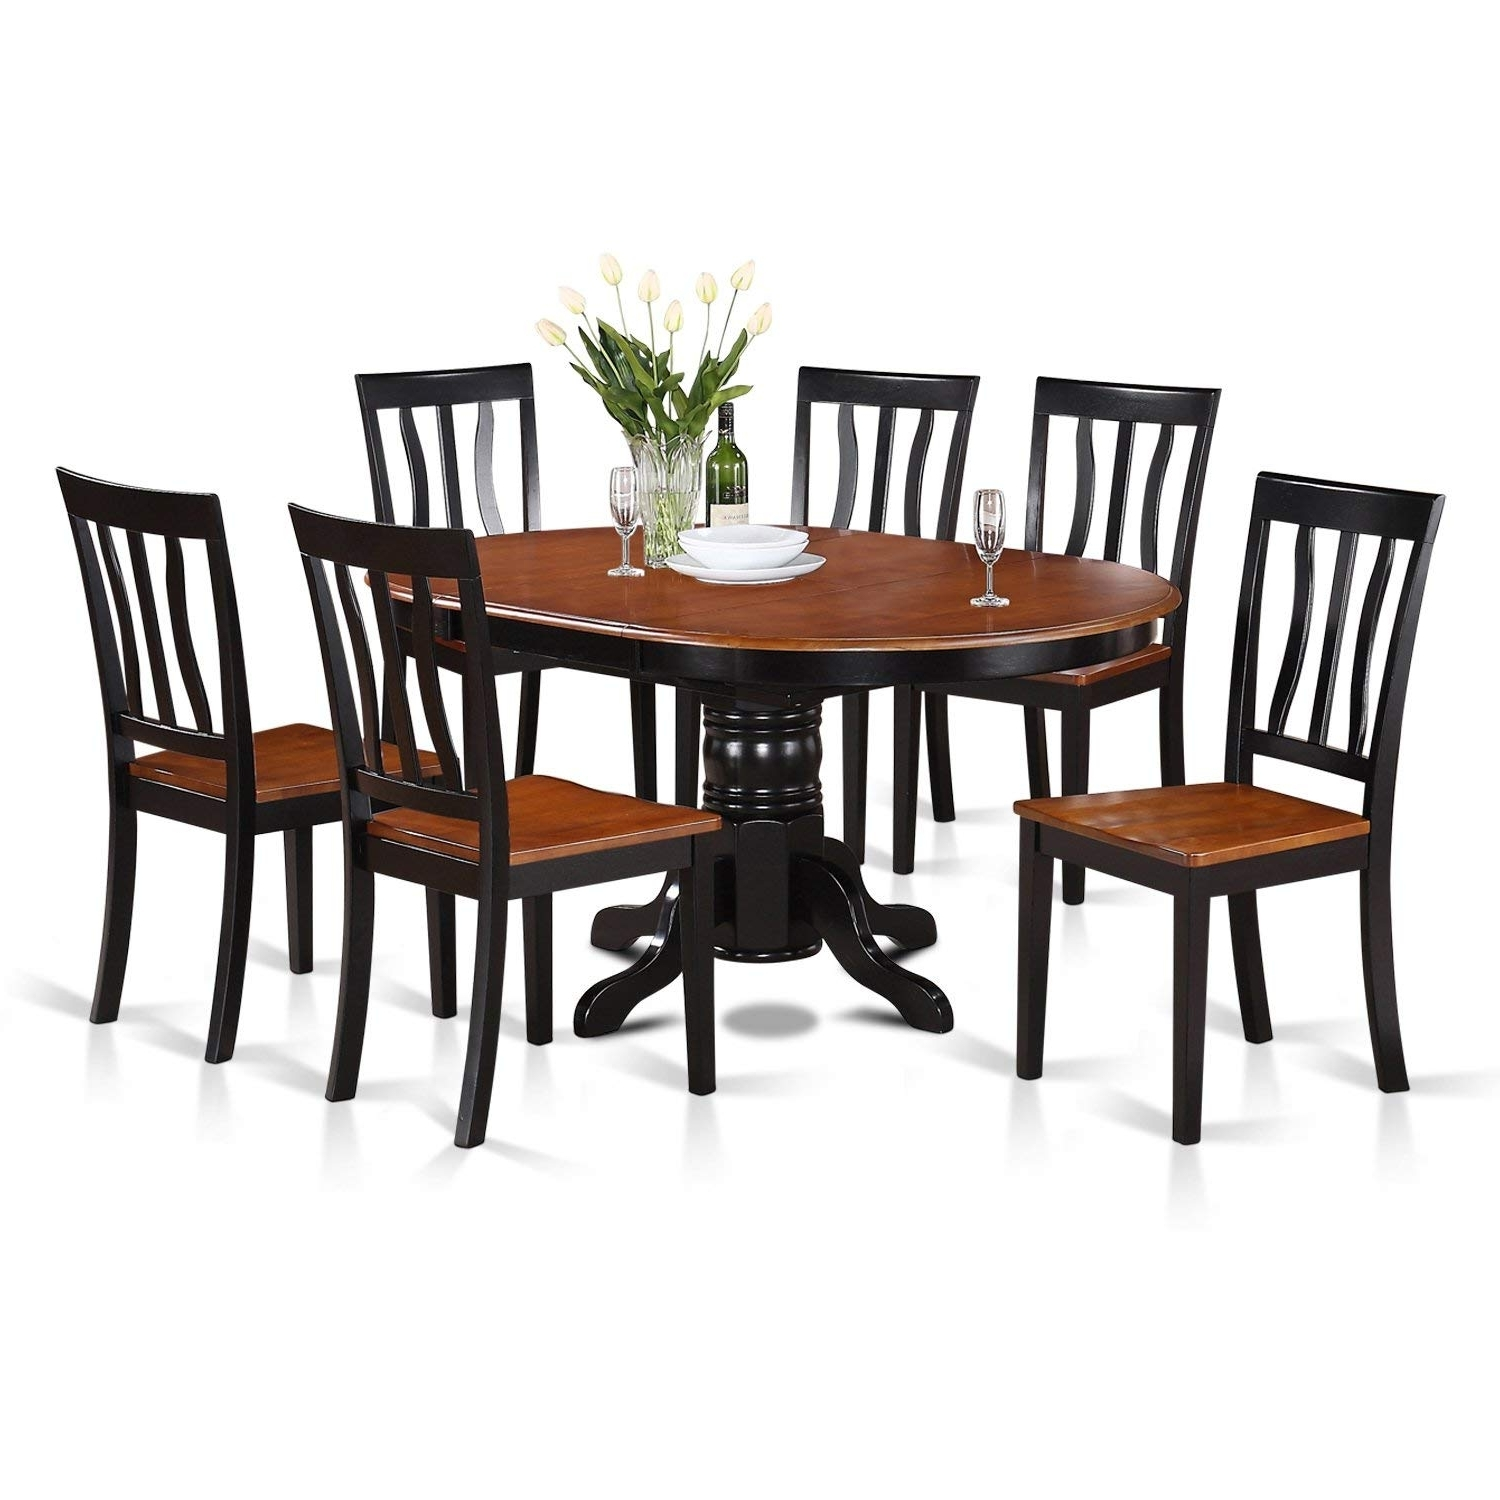 Amazon: East West Furniture Avat7 Blk W 7 Piece Dining Table Set In Most Recently Released Jaxon 6 Piece Rectangle Dining Sets With Bench & Uph Chairs (View 12 of 25)